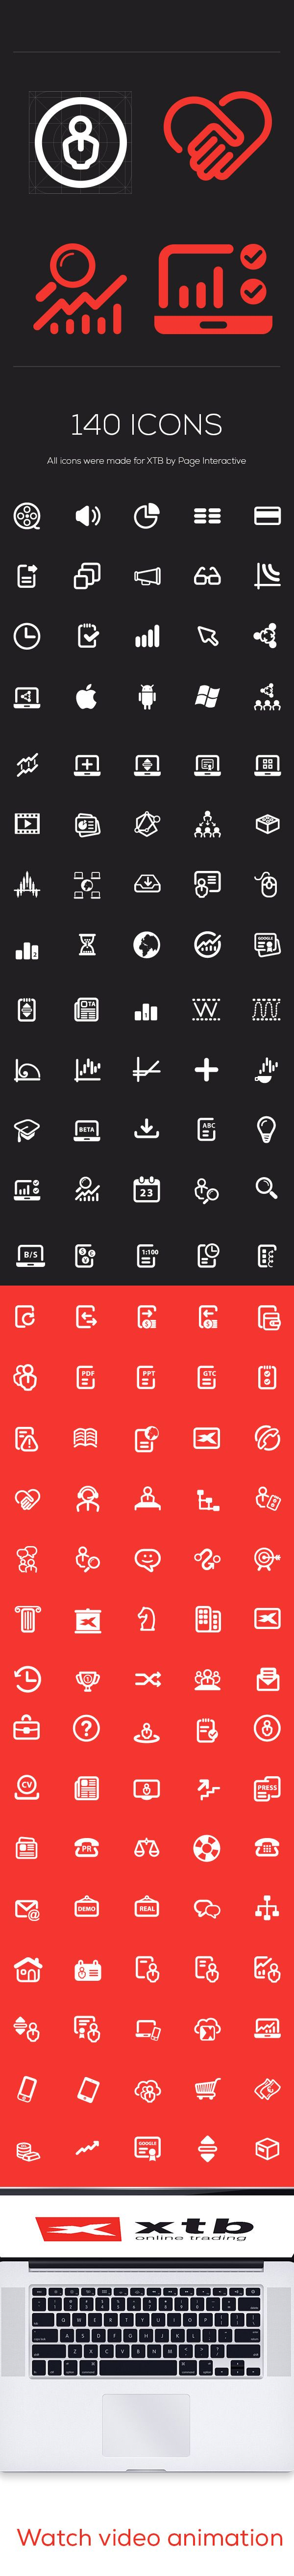 XTB - 140 icon set by PAGE Interactive Sp.j., via Behance